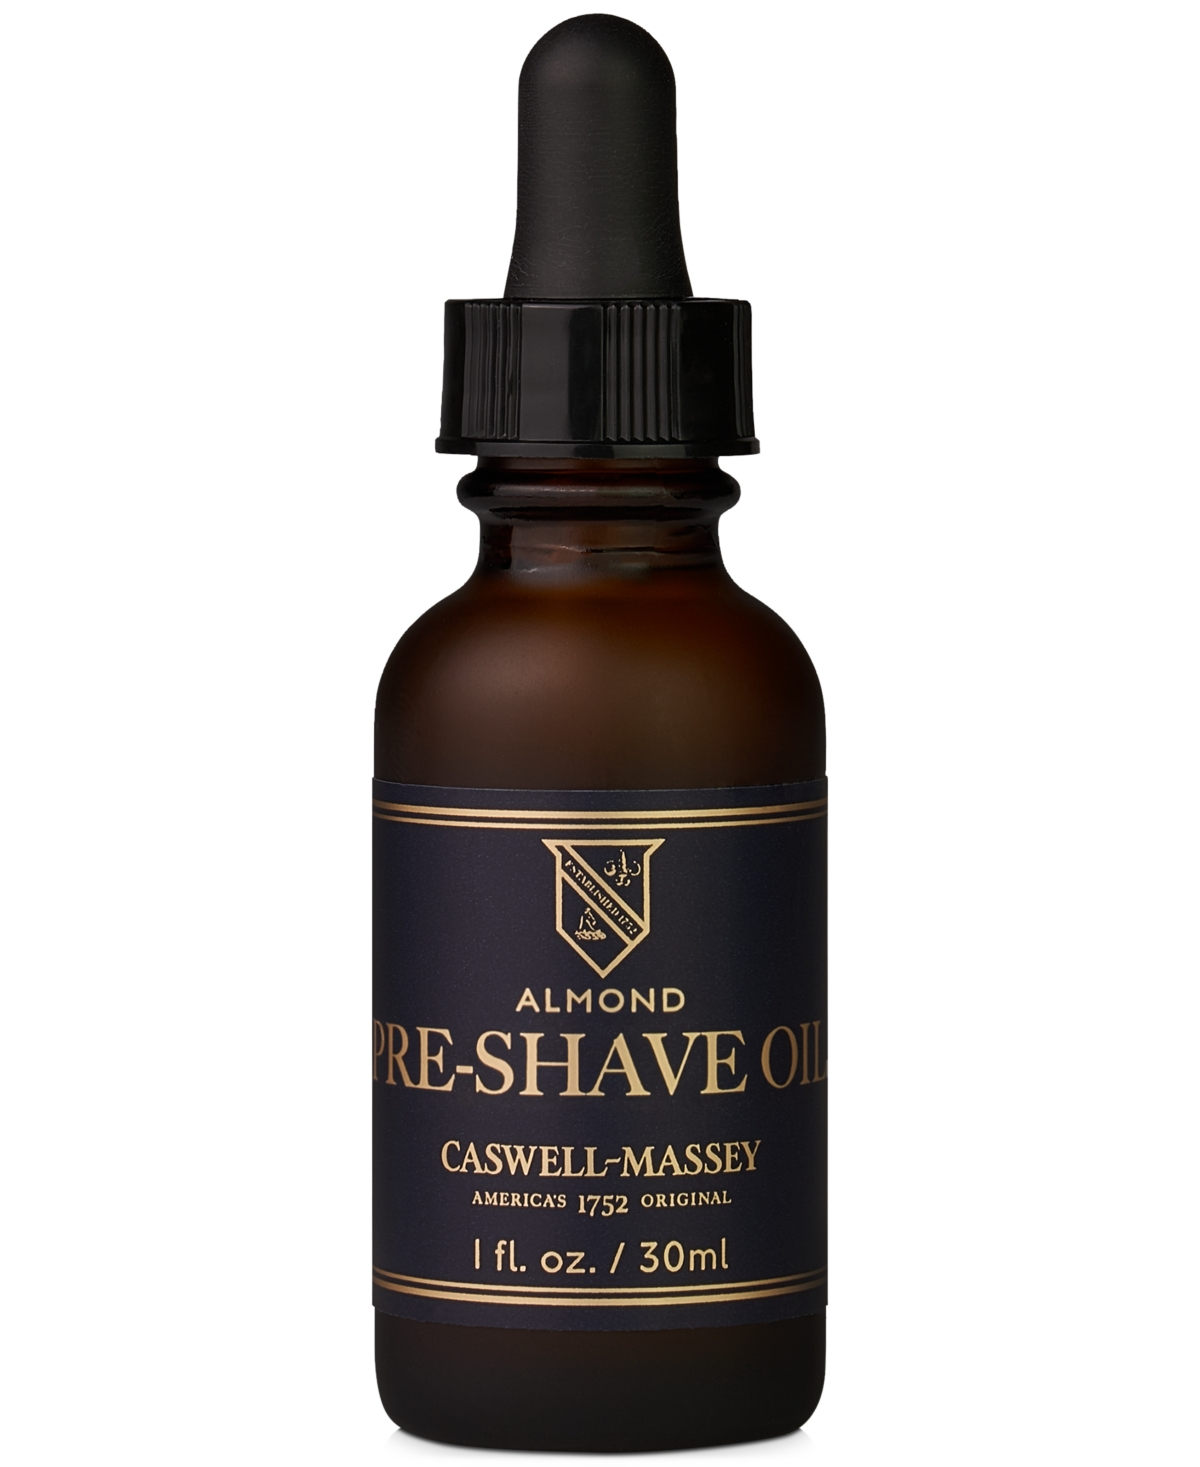 Caswell Massey Heritage Almond Pre-Shave Oil, 1-oz.